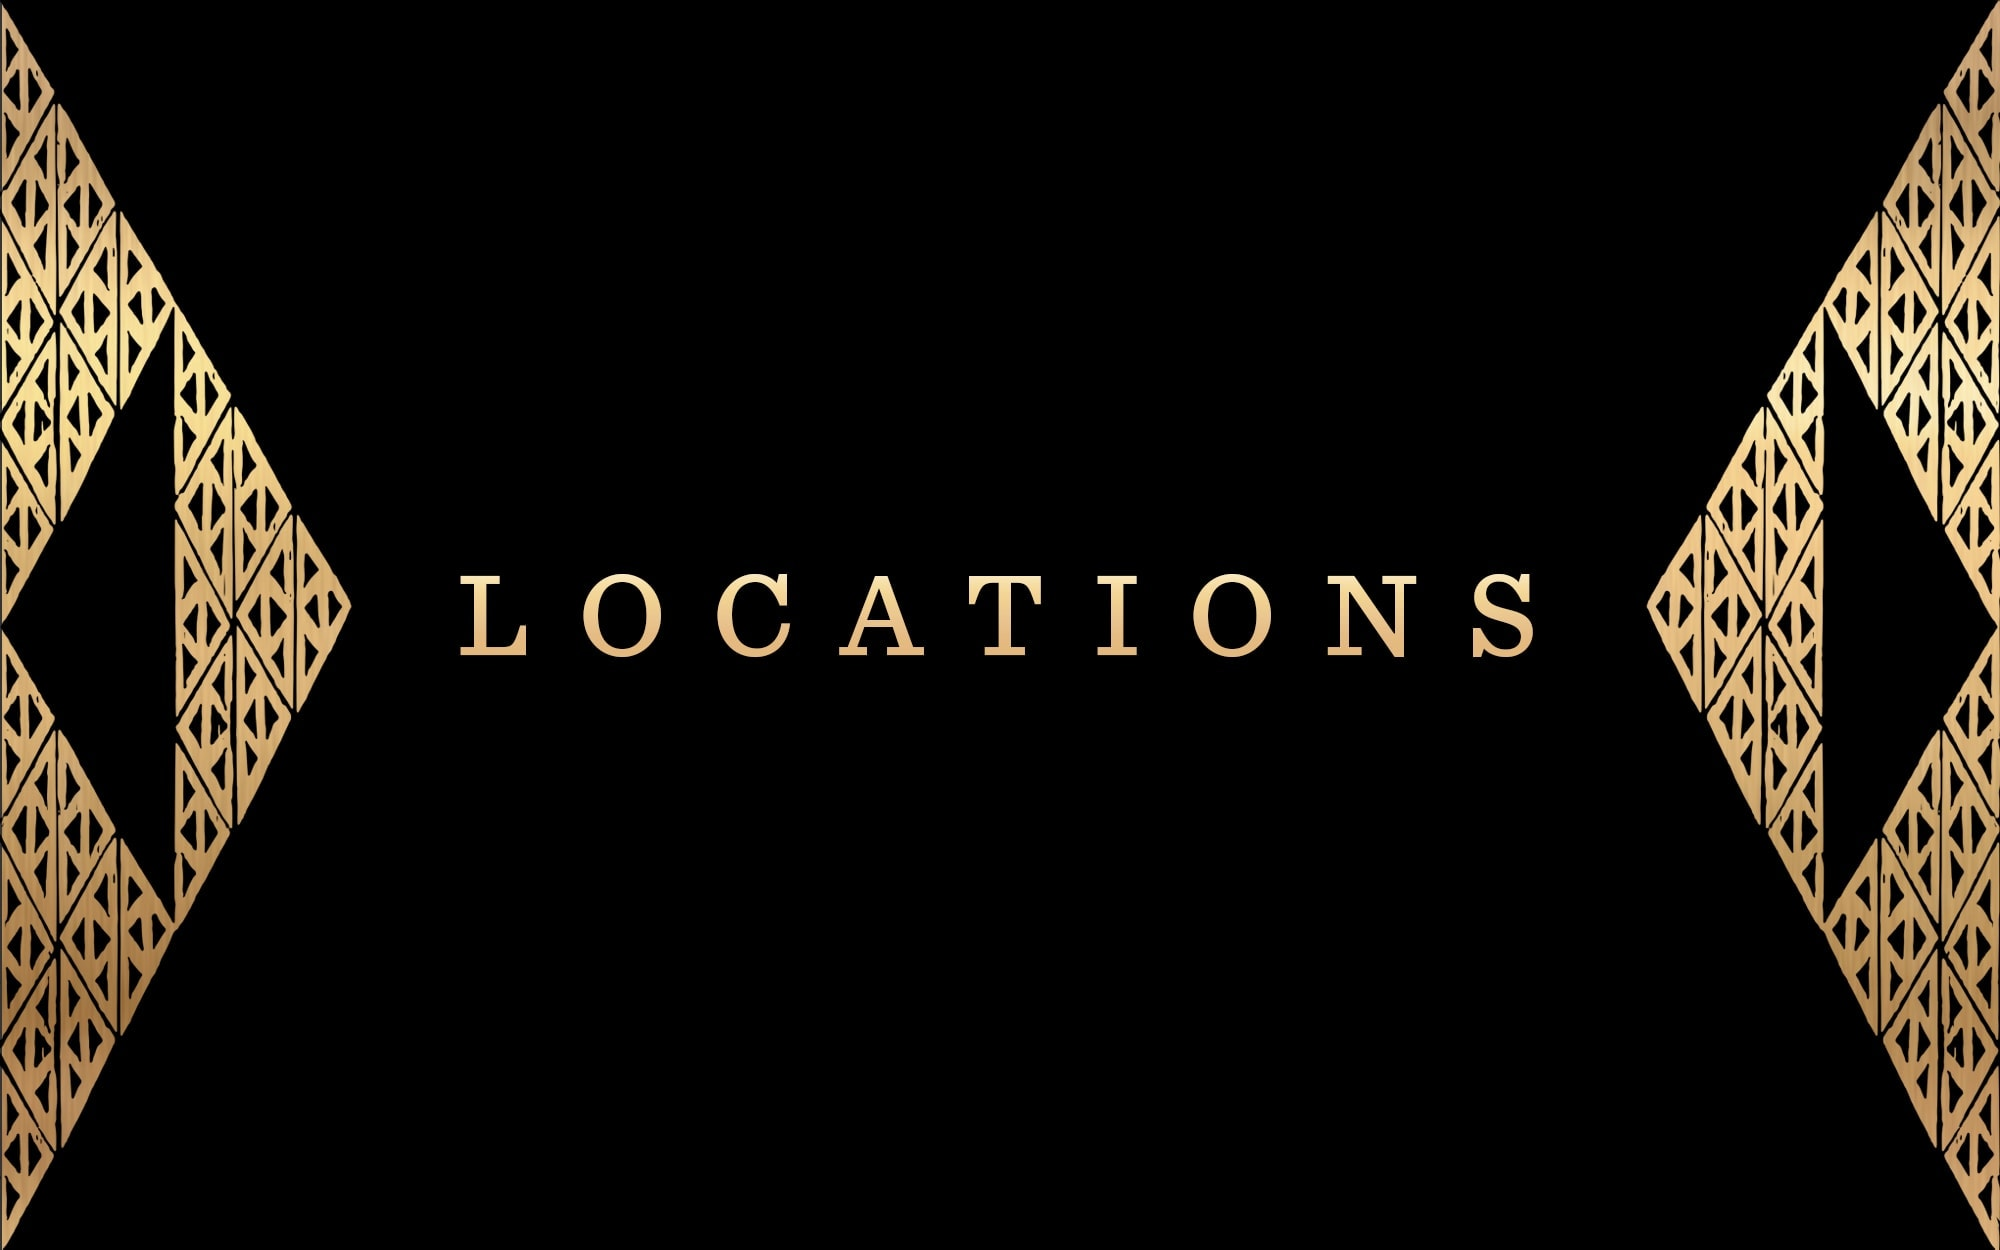 Locations Banner